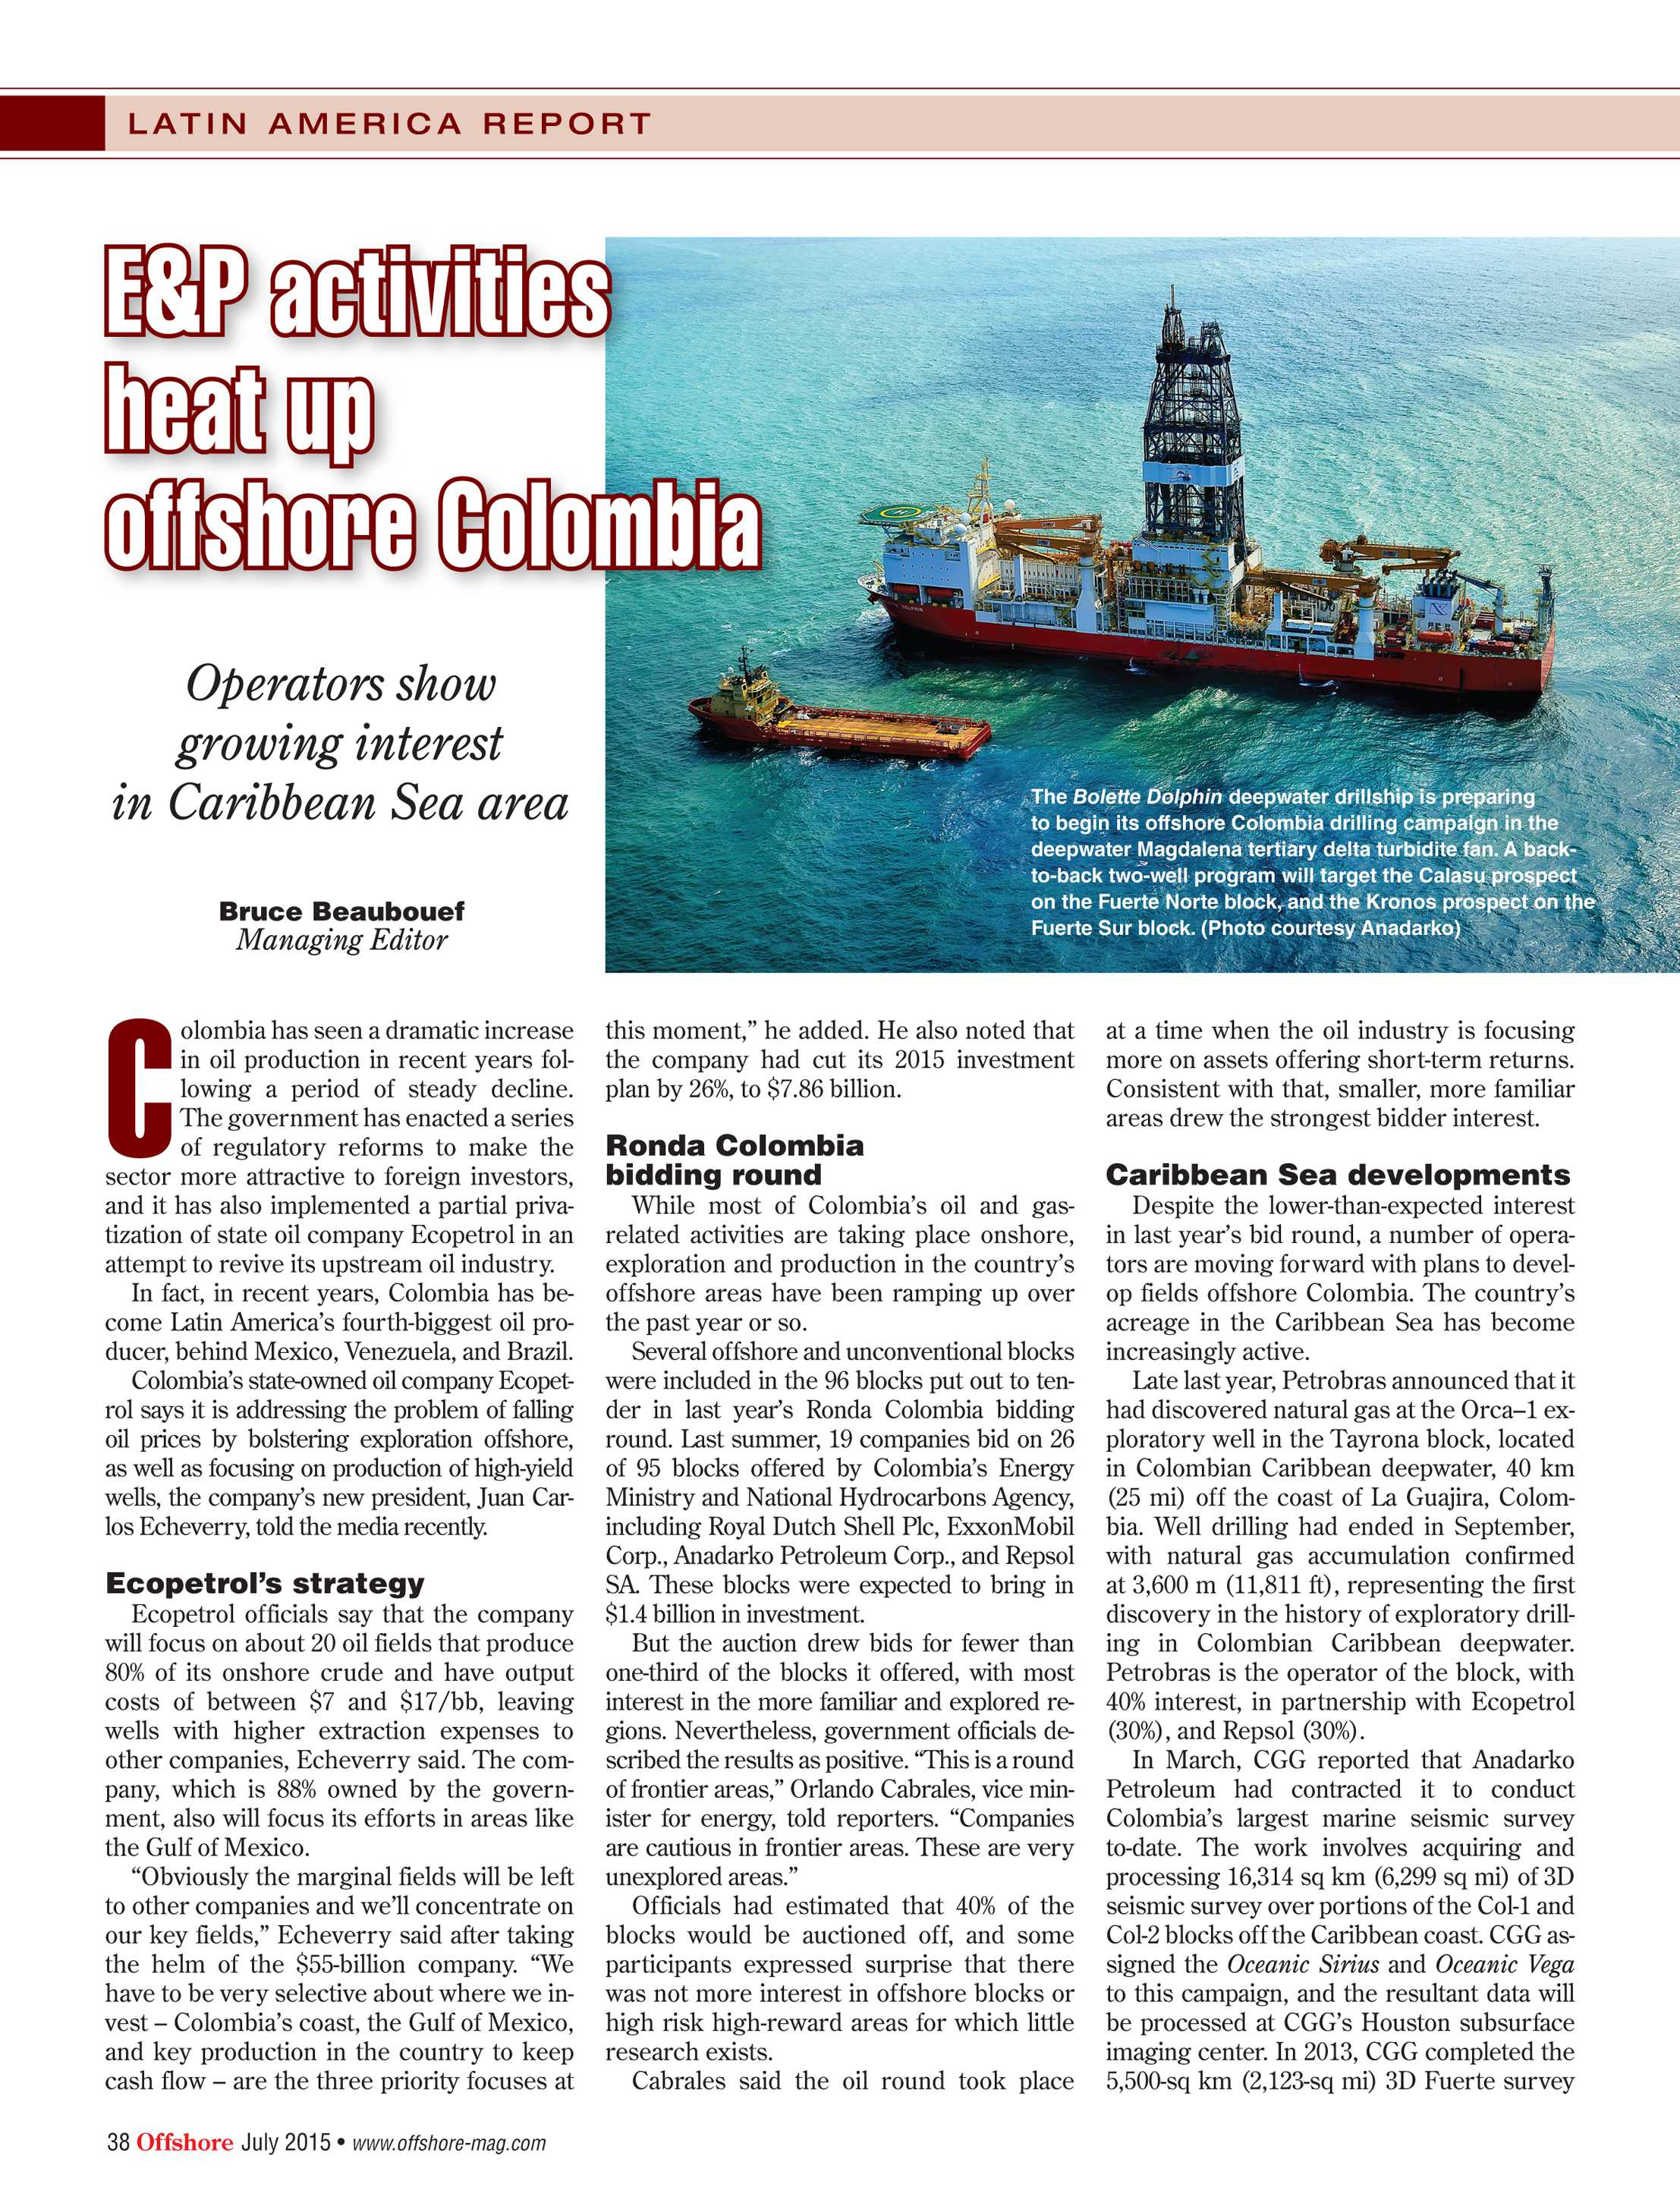 Offshore Magazine - July 2015 - page 38